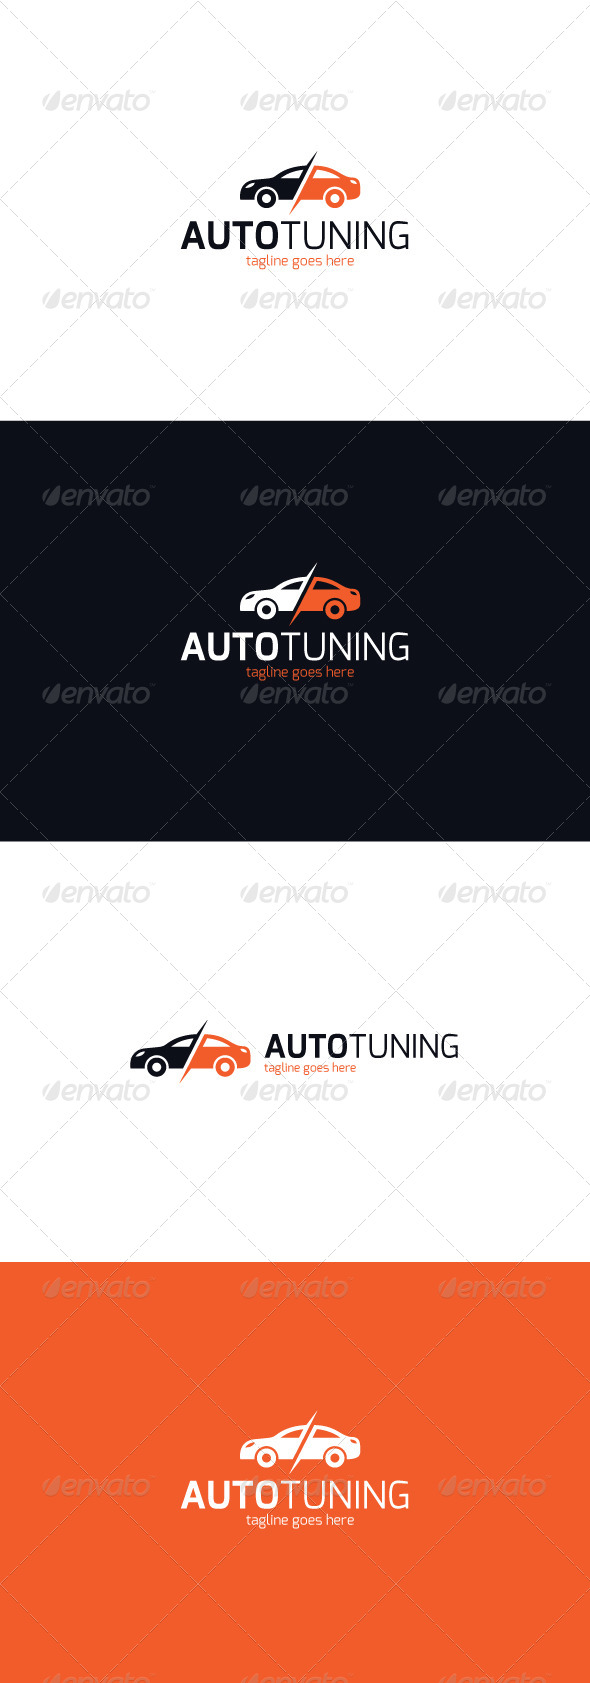 GraphicRiver Auto Tuning Logo 8158202